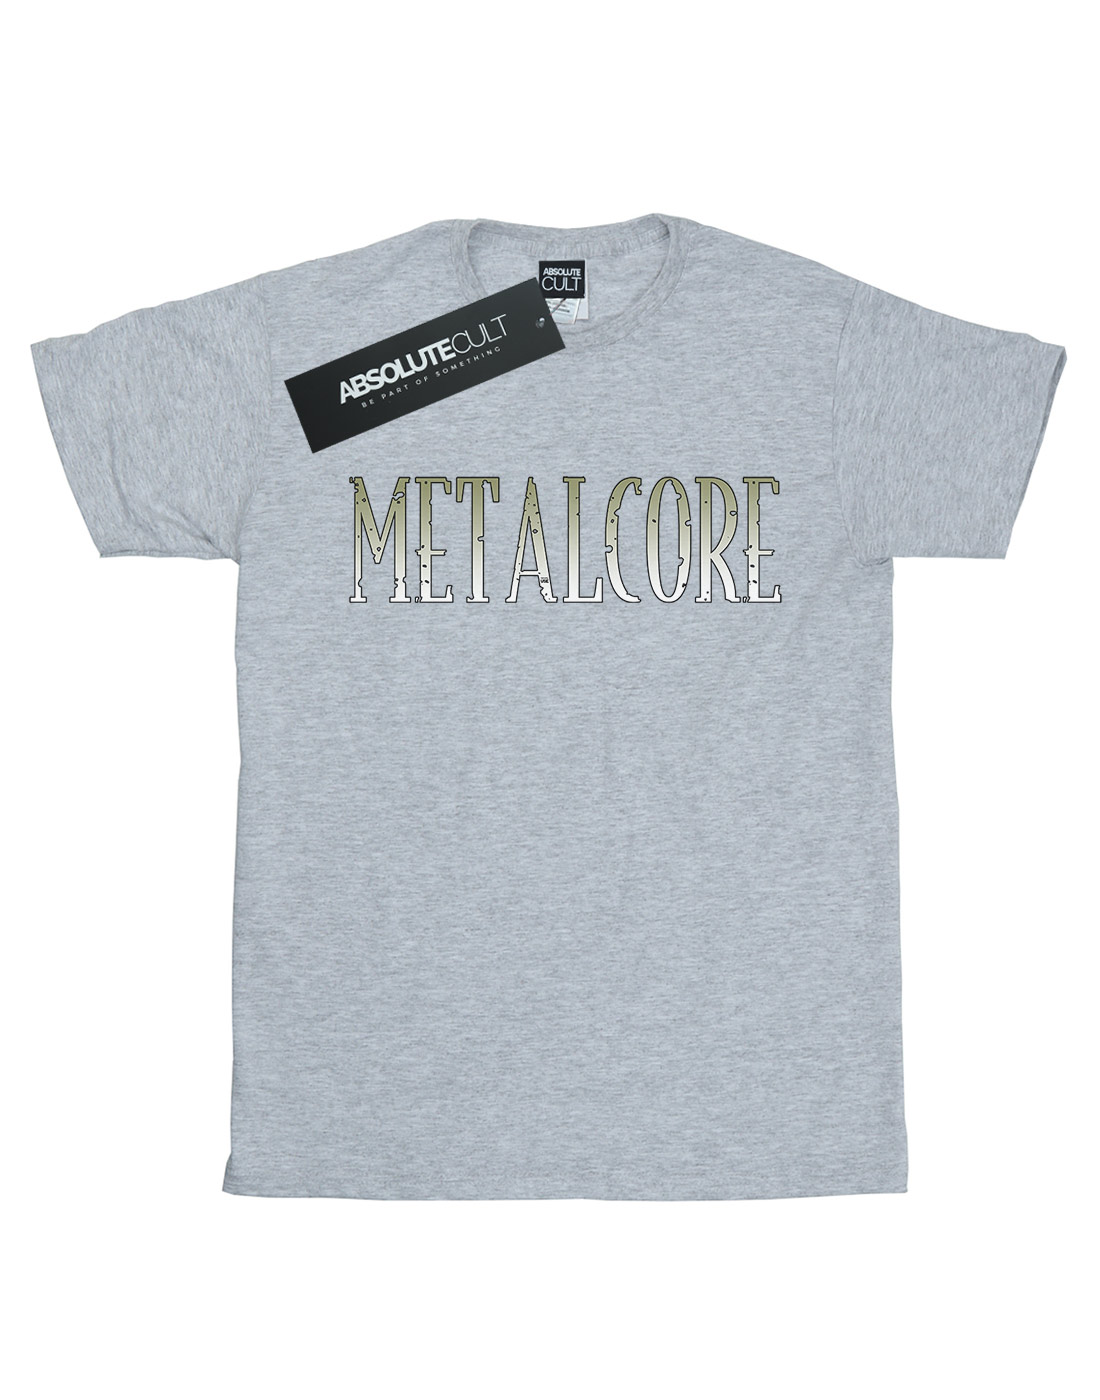 Drewbacca-Men-039-s-Dying-Metalcore-T-Shirt thumbnail 8